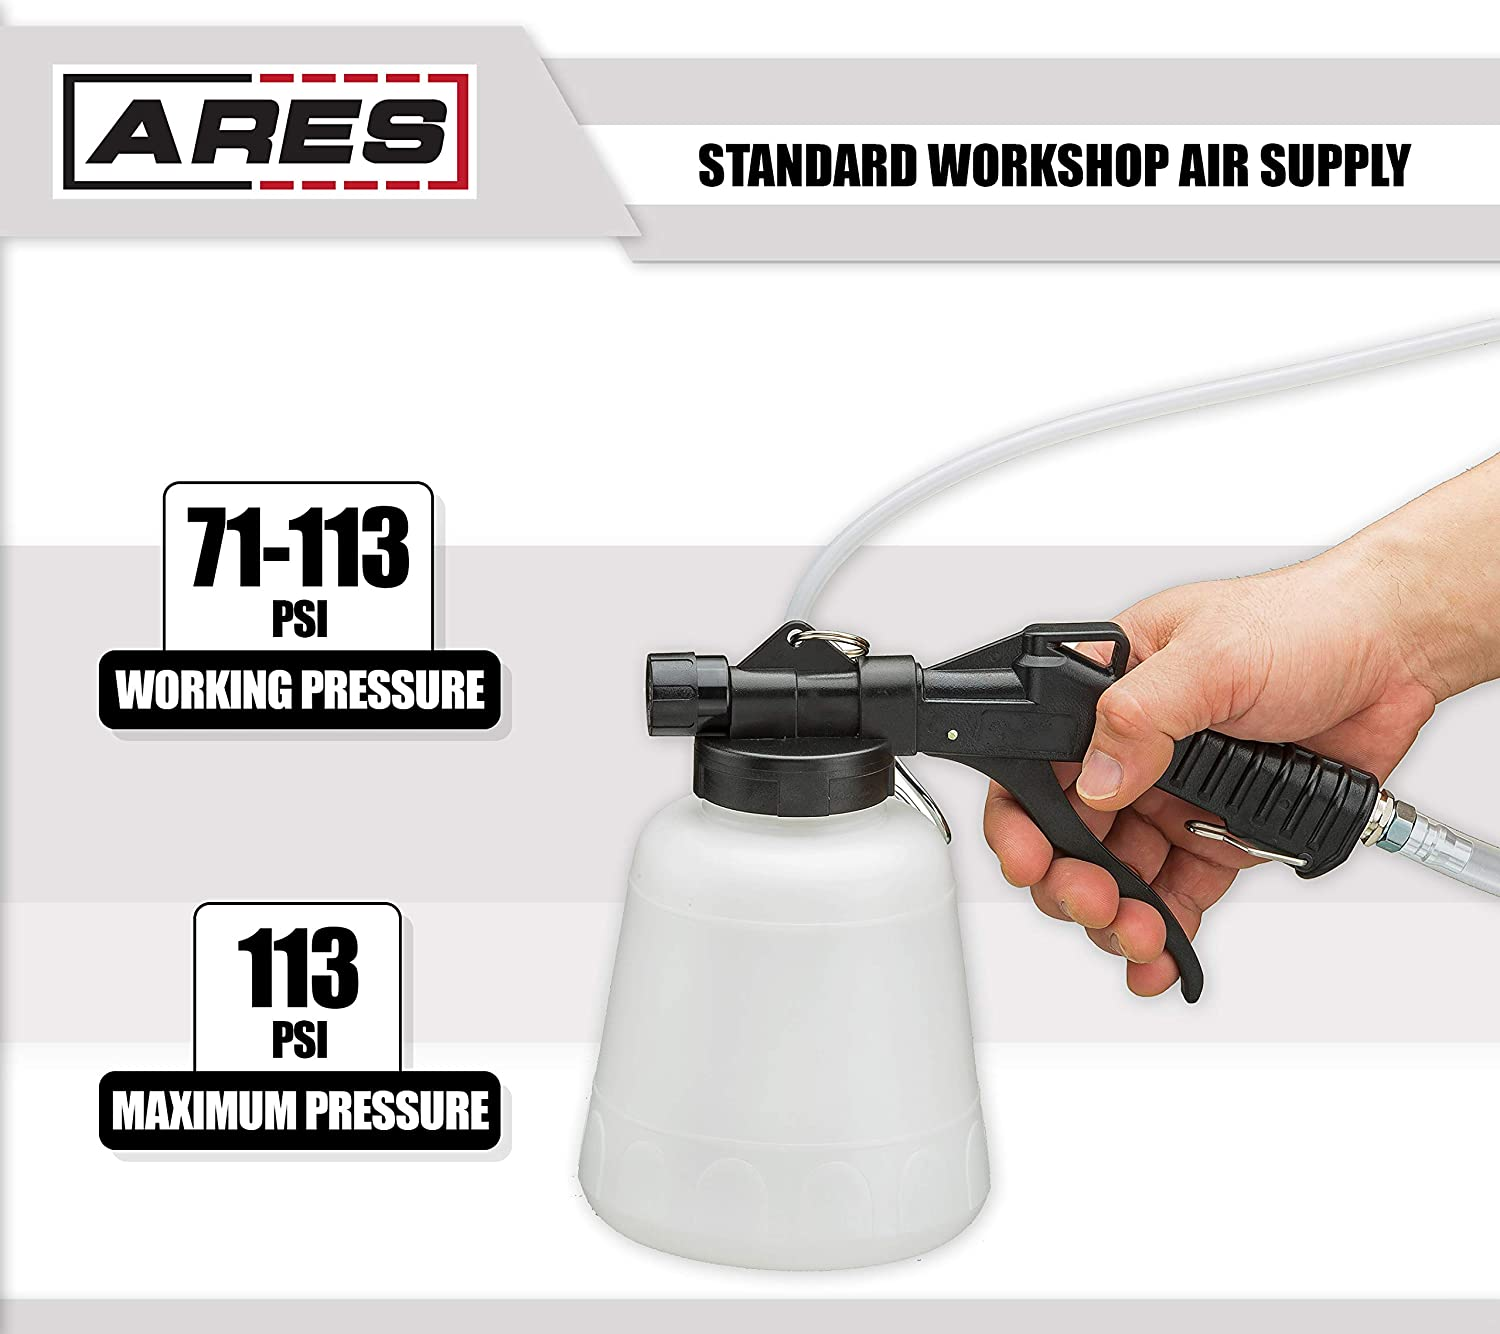 Ares 70923 1l Vacuum Brake Fluid Bleeder Hanging Honda Civic Cooling System Also 99 Diagram Hook And Locking Trigger Allows For Hands Free Operation Automotive